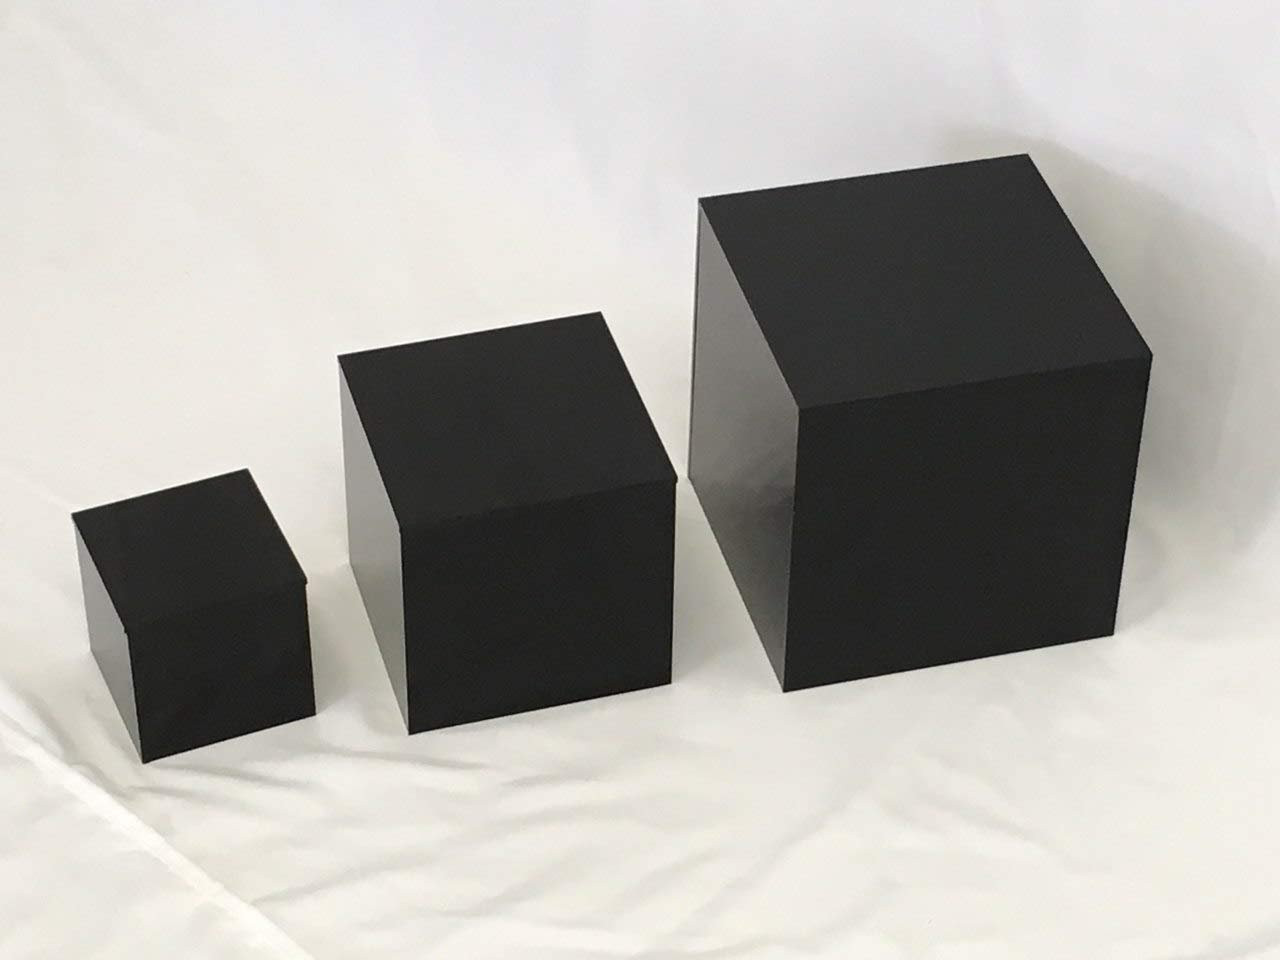 Clear Stands Economy Cubes - Black Square Cube 8 inch, case of 8